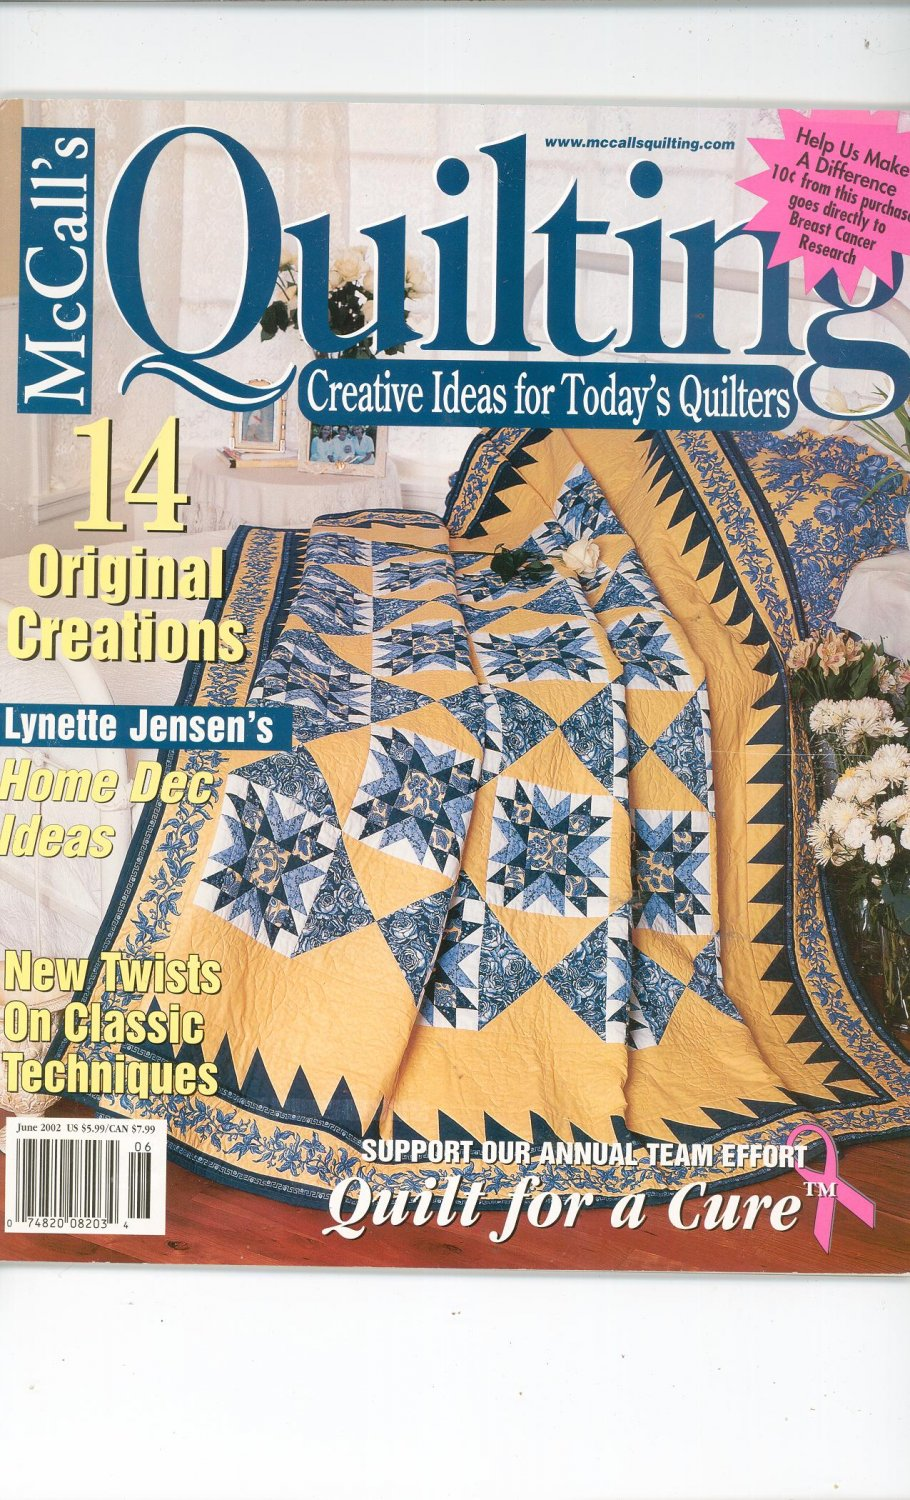 McCall's Quilting Magazine Back Issue June 2002